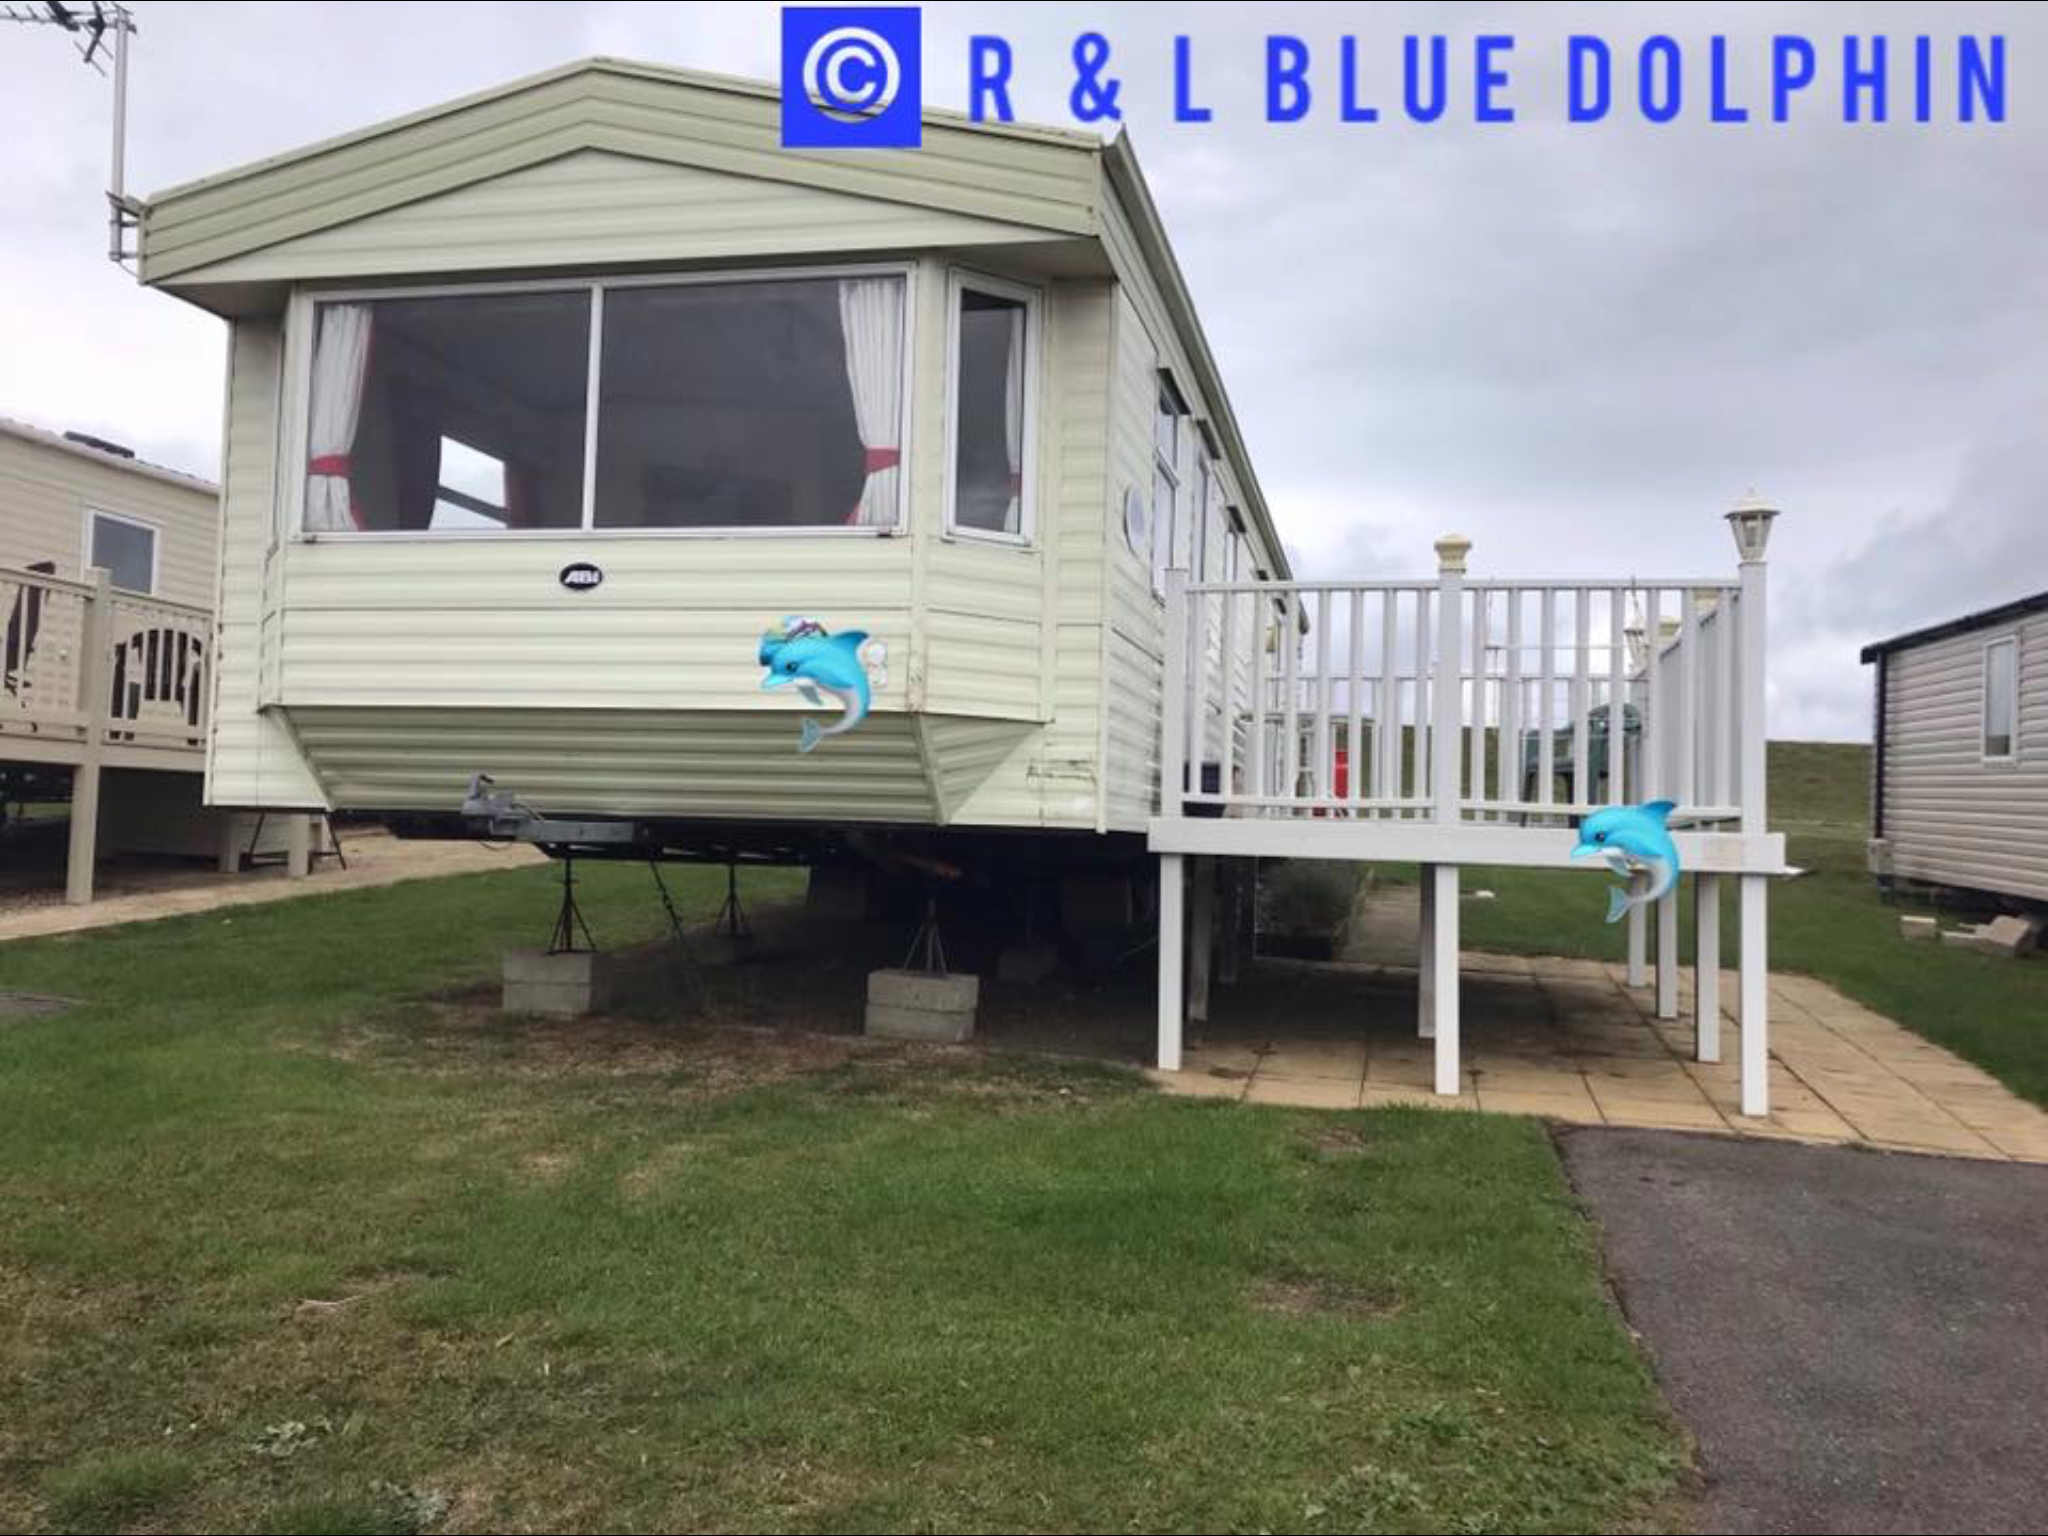 *191* Blue Dolphin Caravan Park, Filey, East Yorkshire